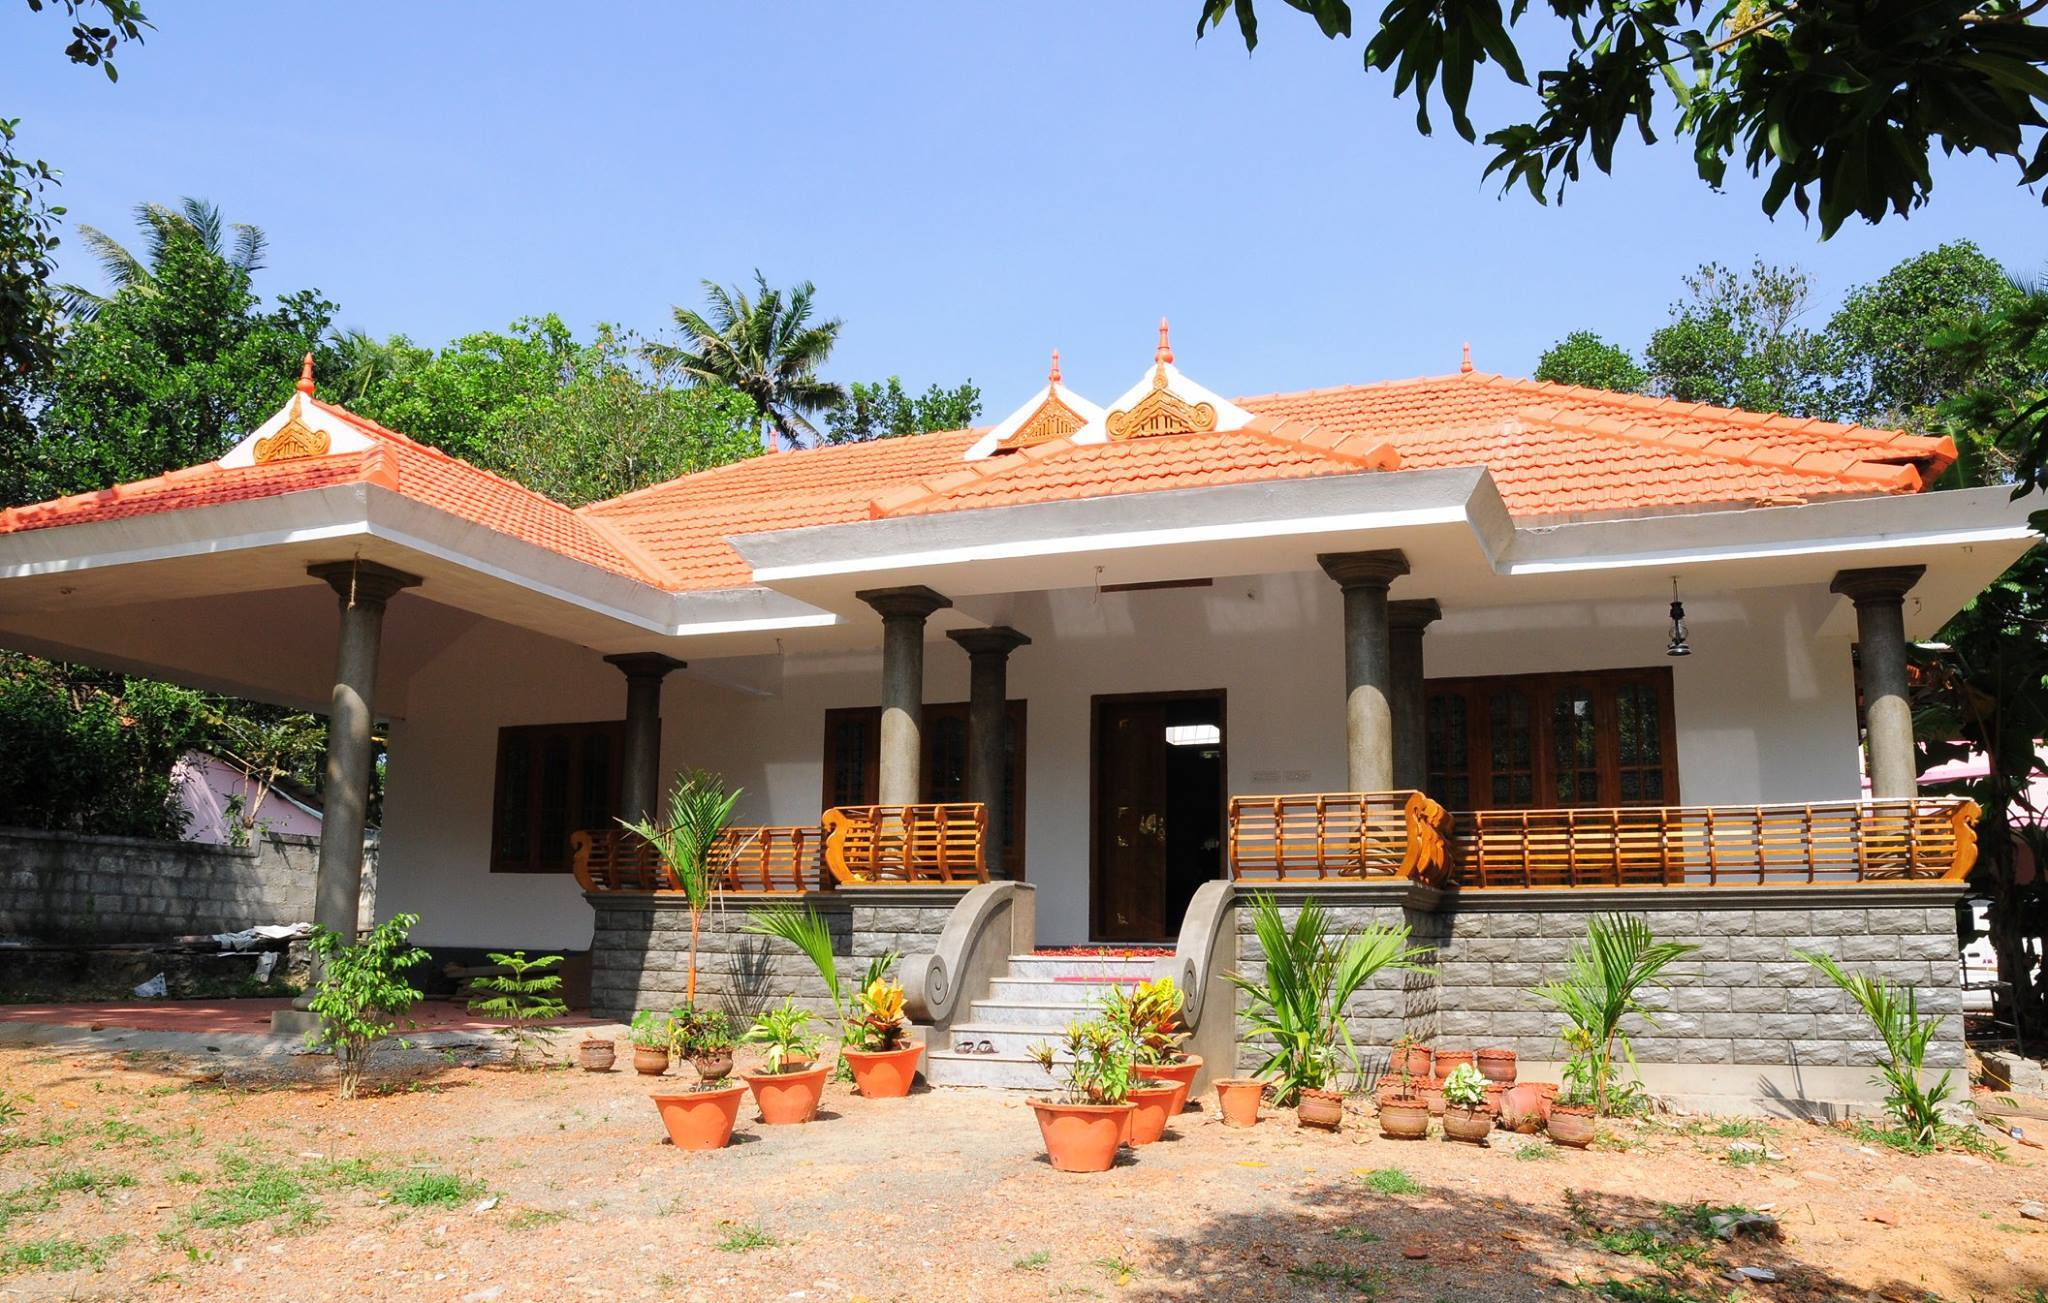 Kerala traditional home plans with photos for Kerala traditional home plans with photos